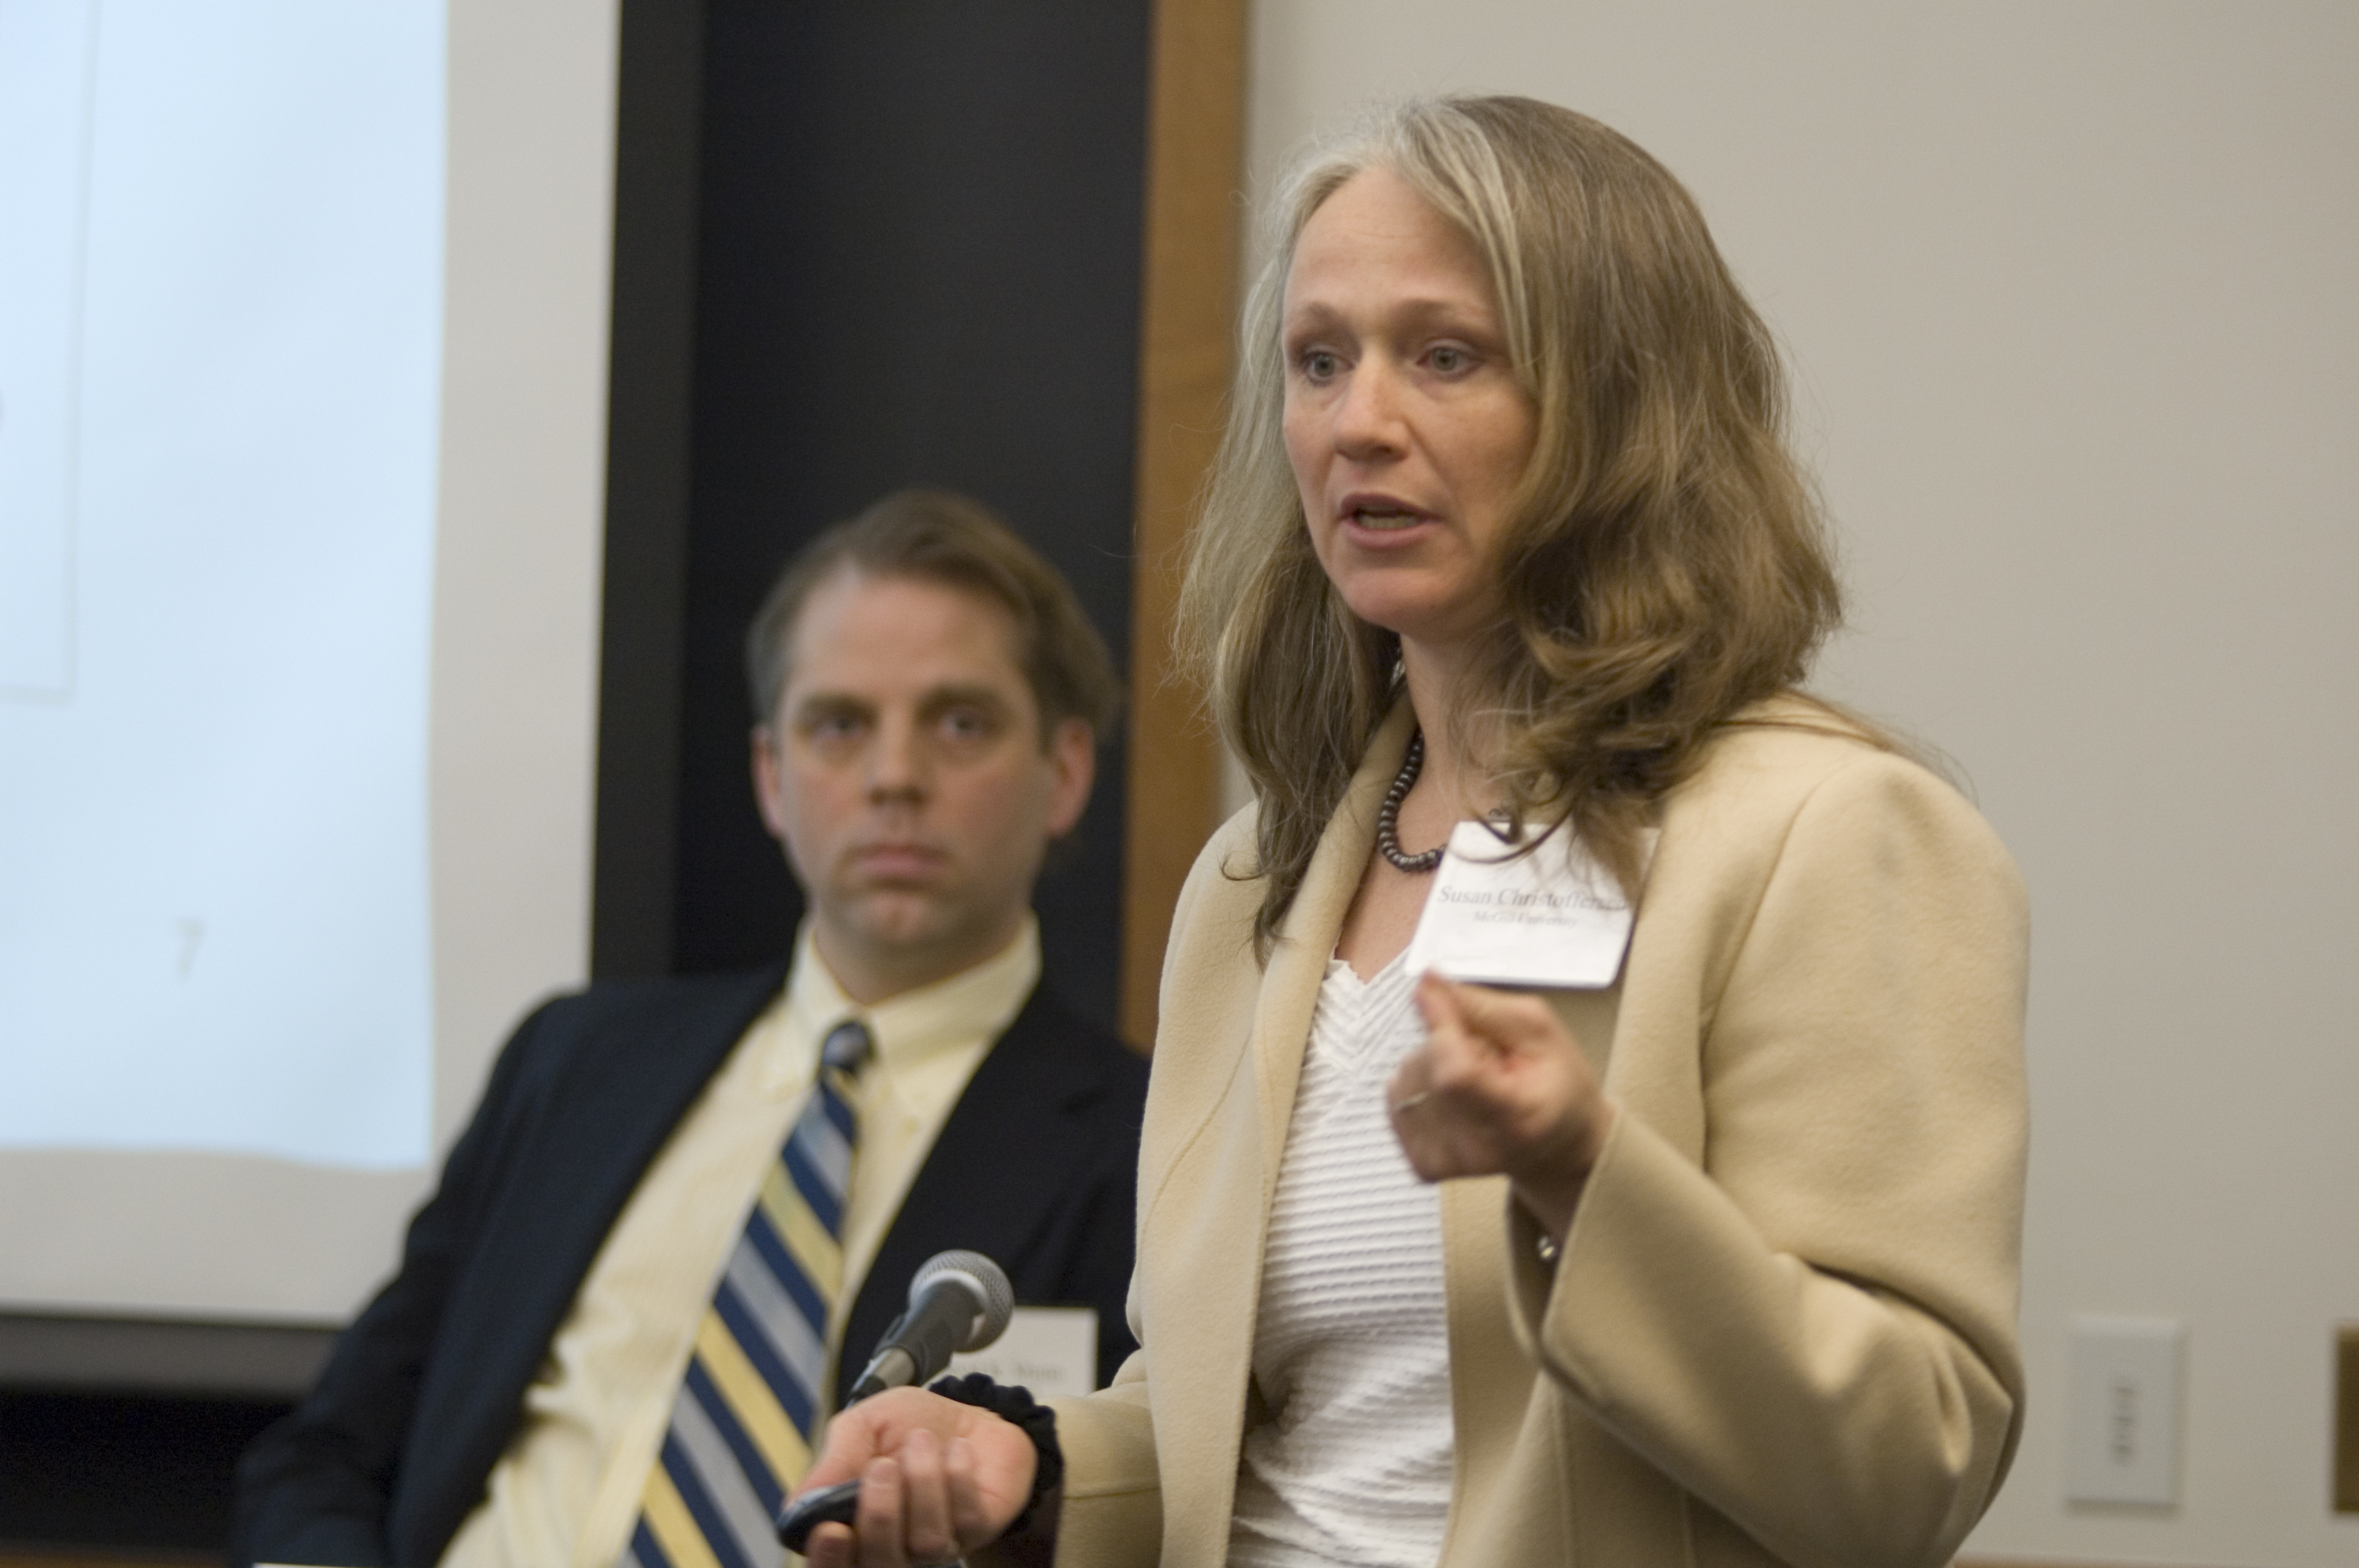 McGill U. Prof. Susan Kerr Christofferson (foreground) and Wharton Prof. David Musto (background)